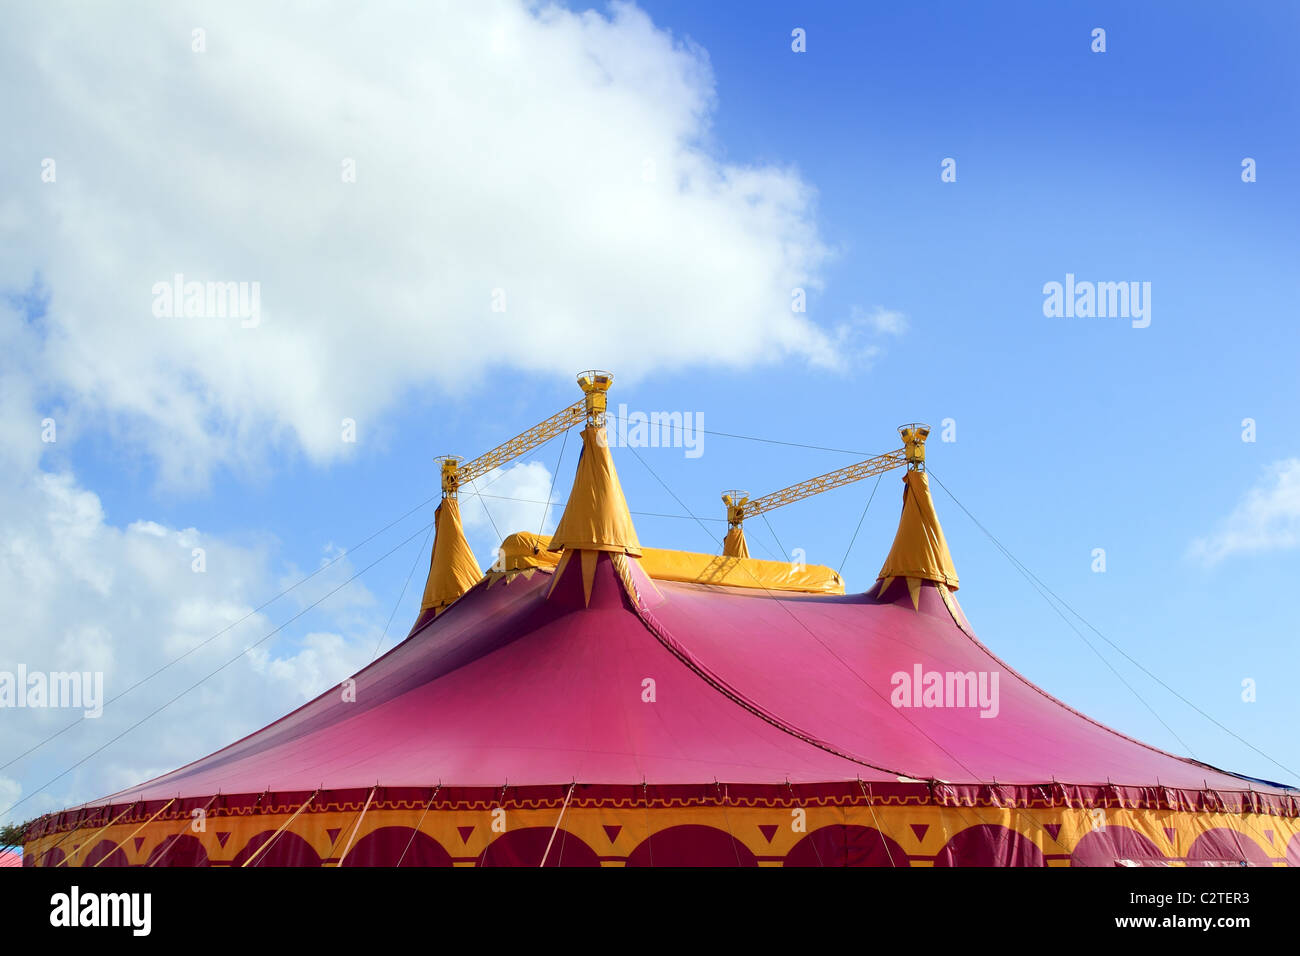 Circus tent red pink color four towers blue sky - Stock Image